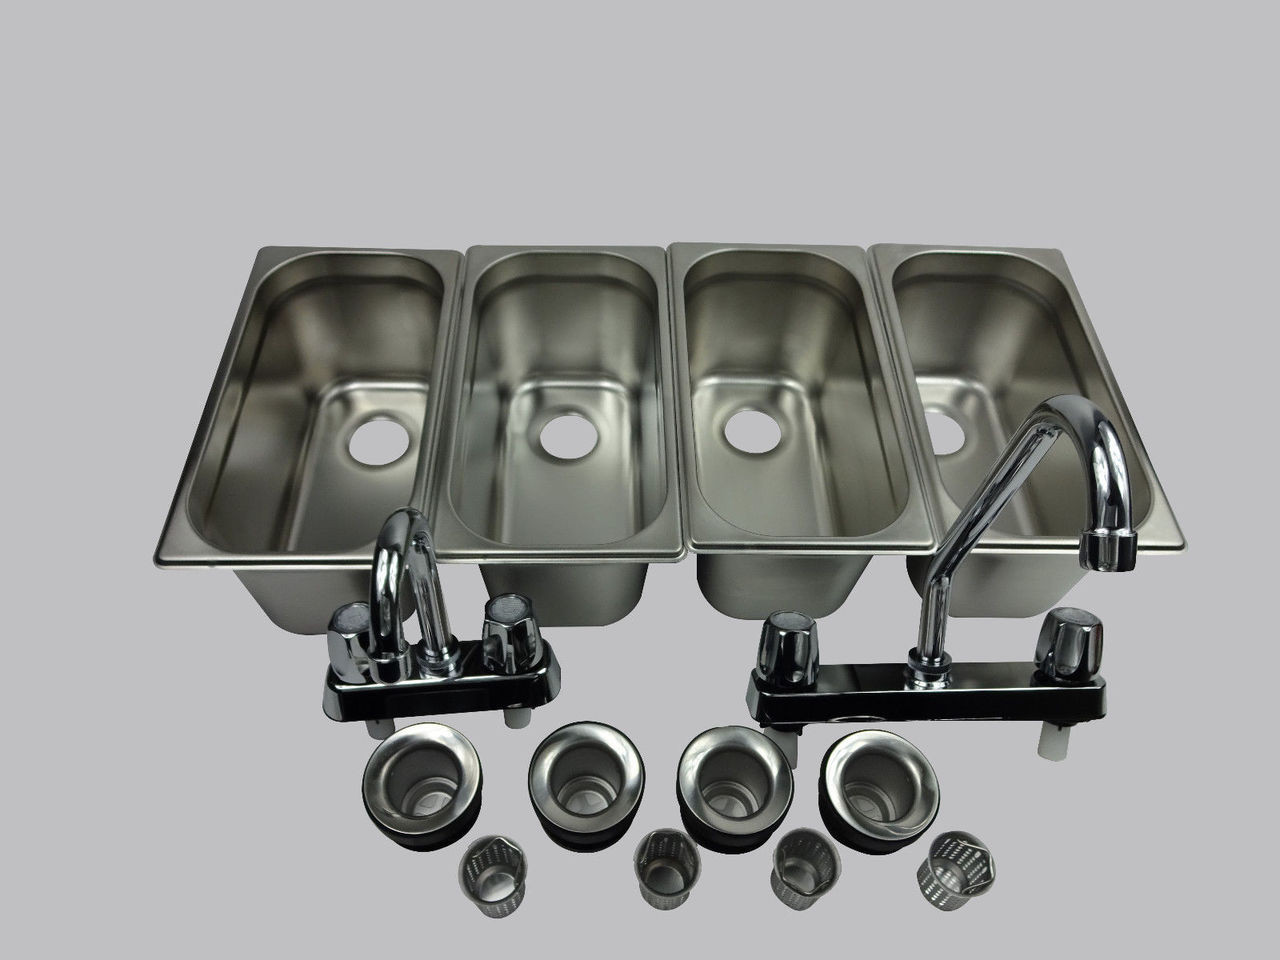 Standard 4 Compartment Concession Sink Set & Hand Washing  inner view